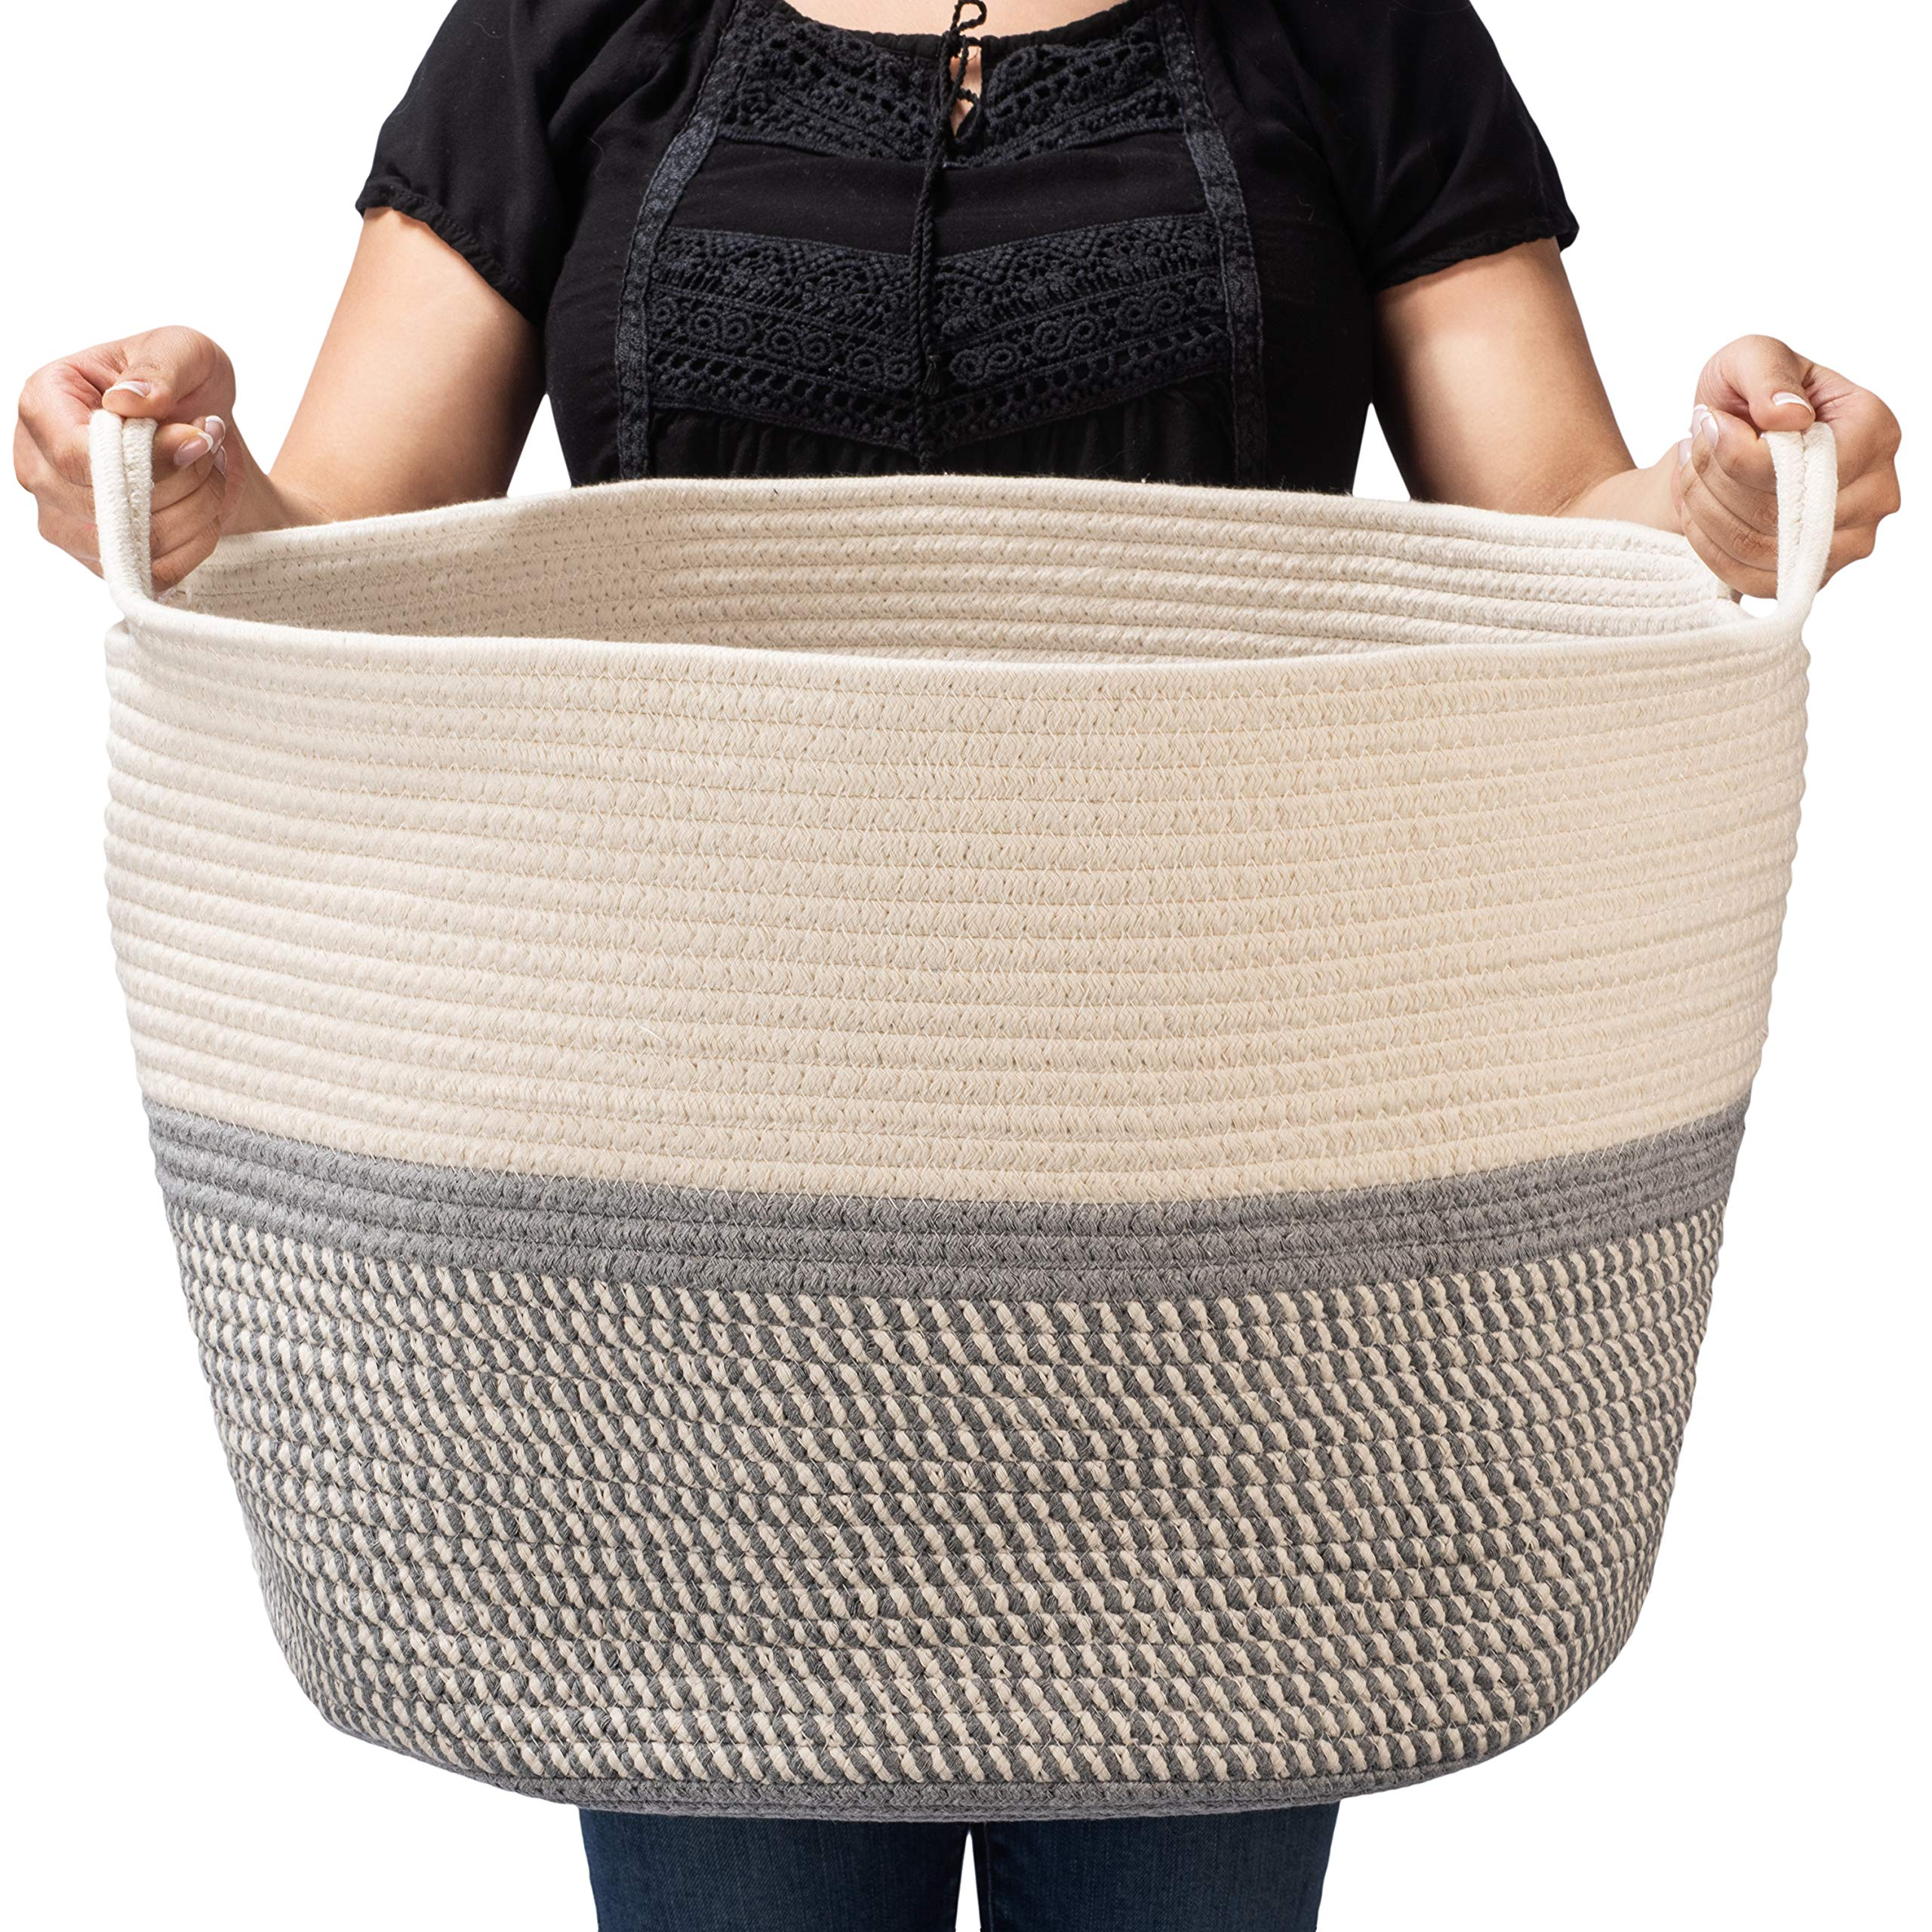 BASKETCASE XXXLarge Cotton Rope Basket Large (21.7'' x 21.7'' X 13.8'') for Storage of Extra Large Toy Toys Blankets Laundry Baskets XXXL Hamper Decor for Bedroom Nursery Play Room''The Kate''